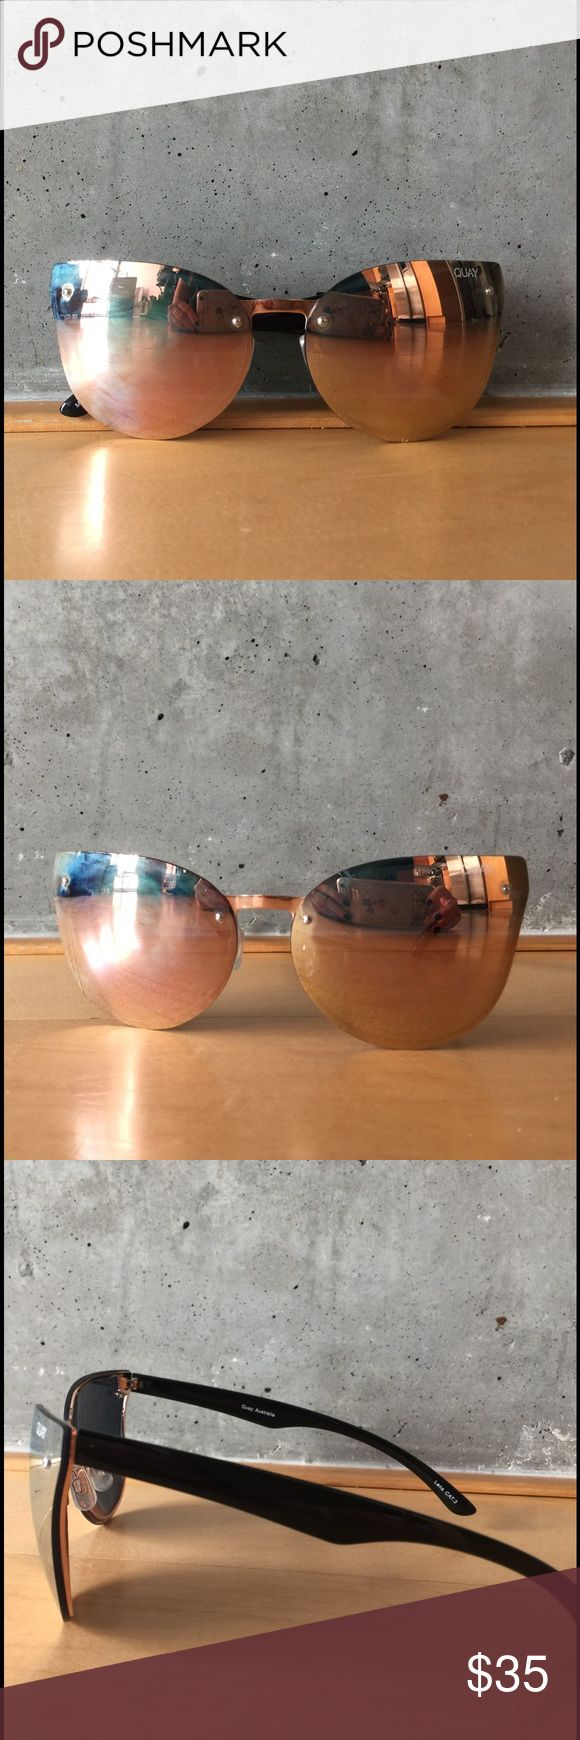 Quay Higher Love Rose Gold Sunglasses Lightweight rose gold sunnies featuring mirrored cat eye lenses, rimless design, adjustable nose pads and hidden glossy black rims and arms. 100% UV protection. Worn these once so in perfect condition. Quay Australia Accessories Sunglasses